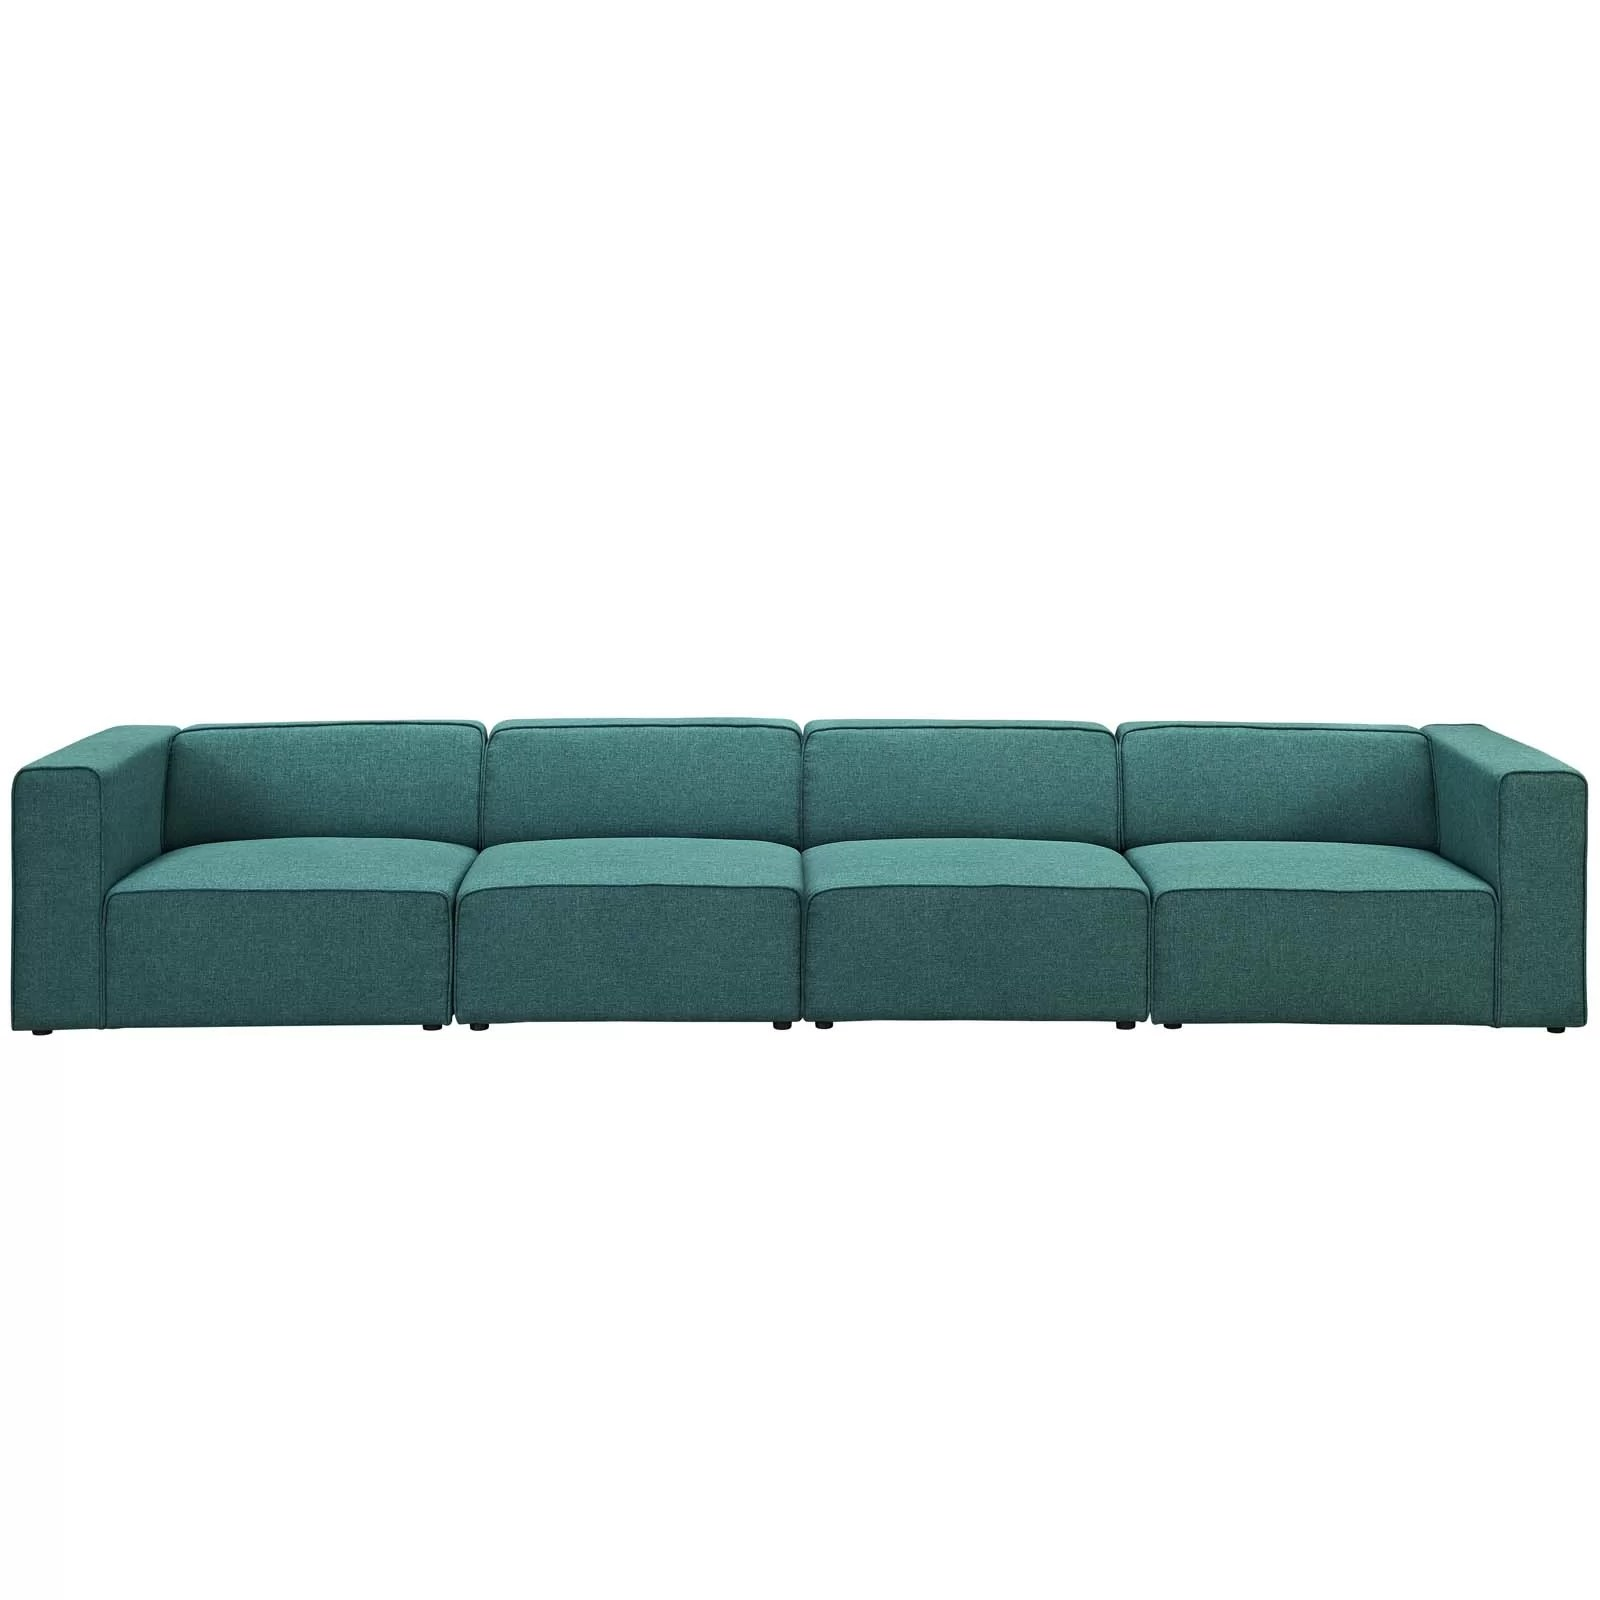 Cheap Modular Lounges Crick Modular Sofa